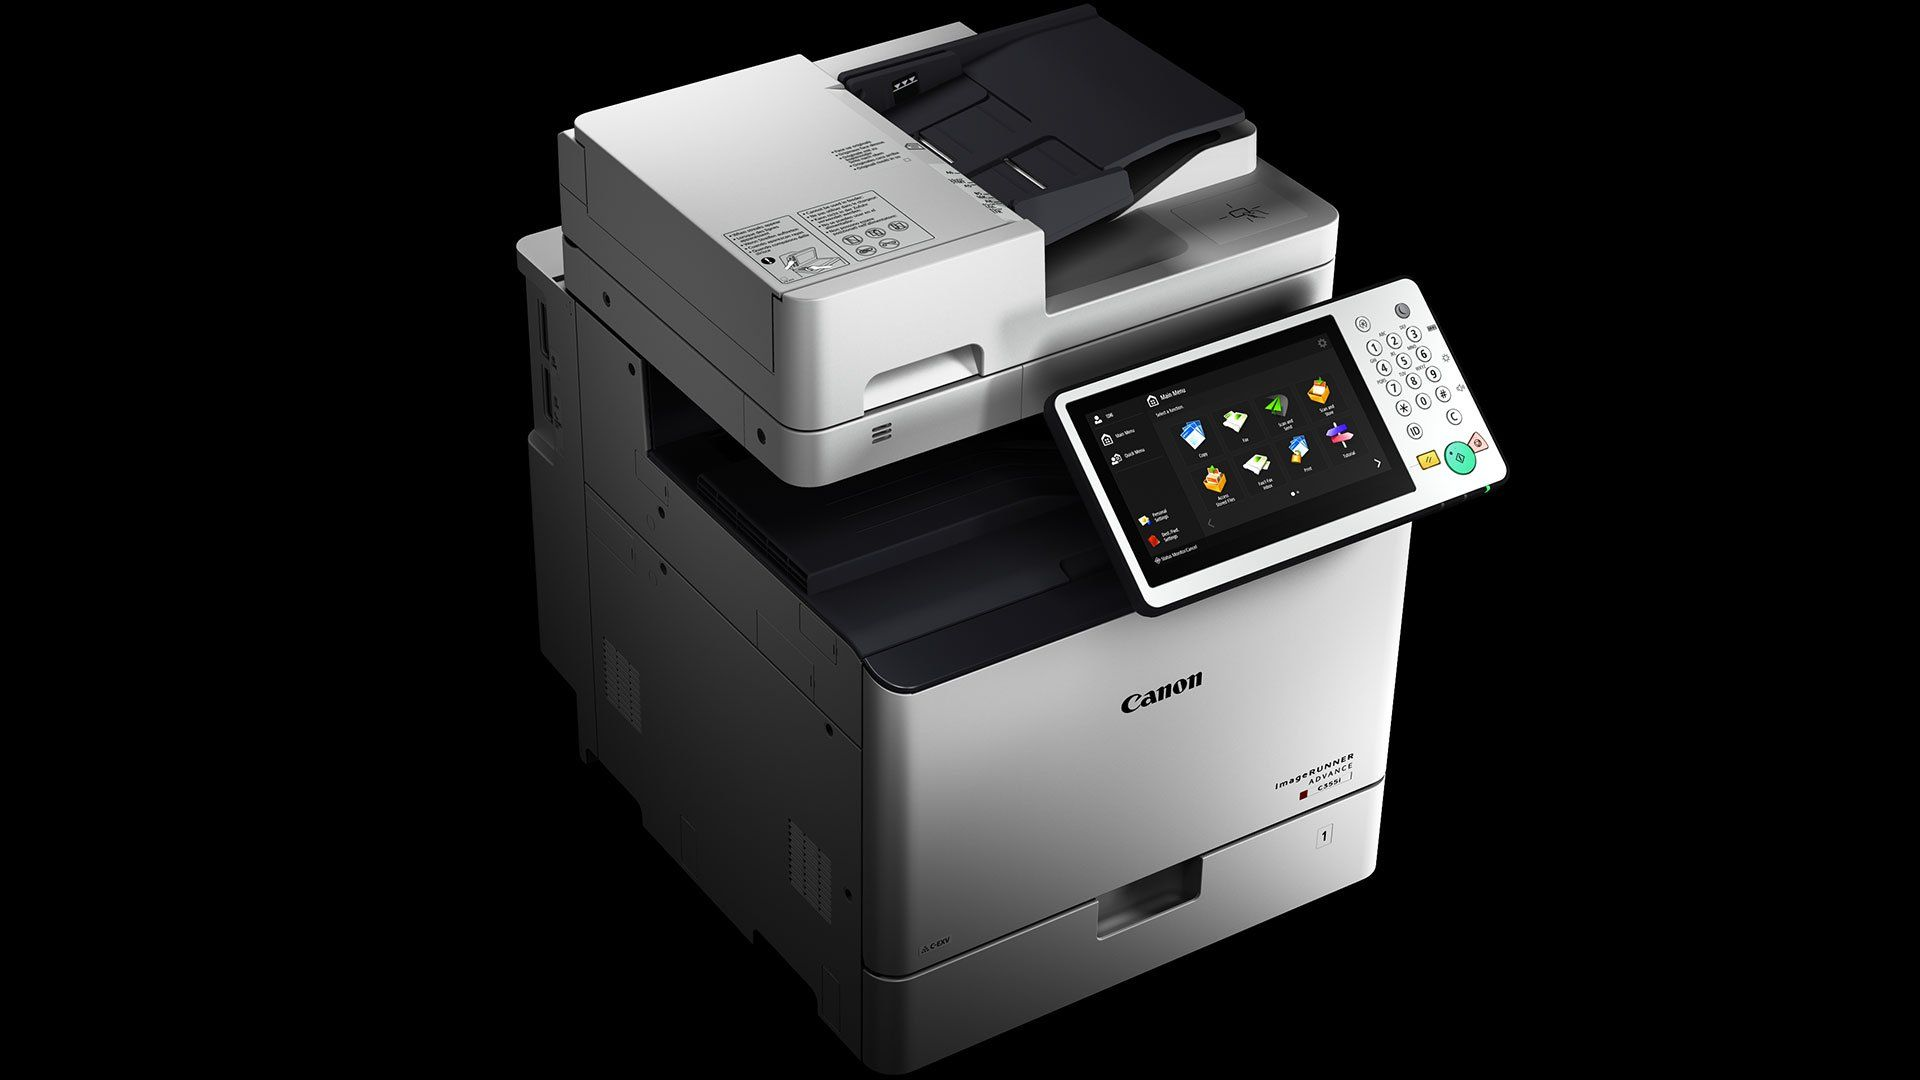 canon imagerunner advance c255 c355 series business printers fax